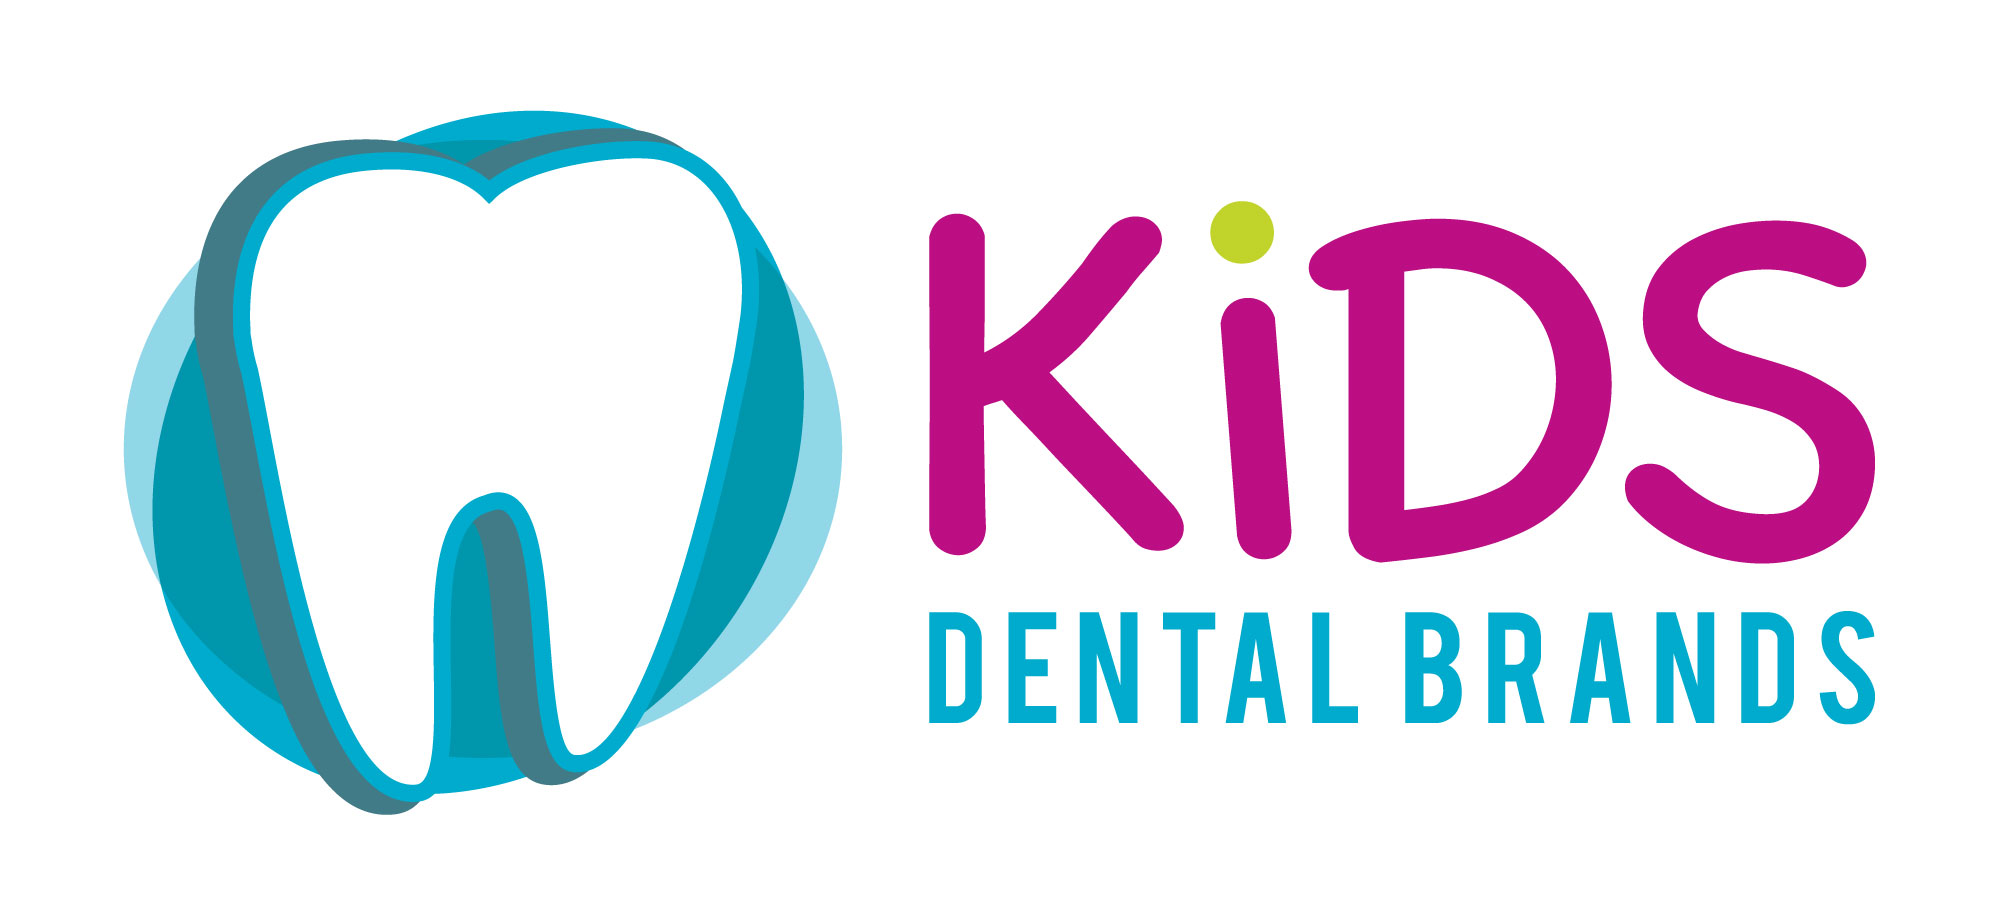 Kids Dental Brand